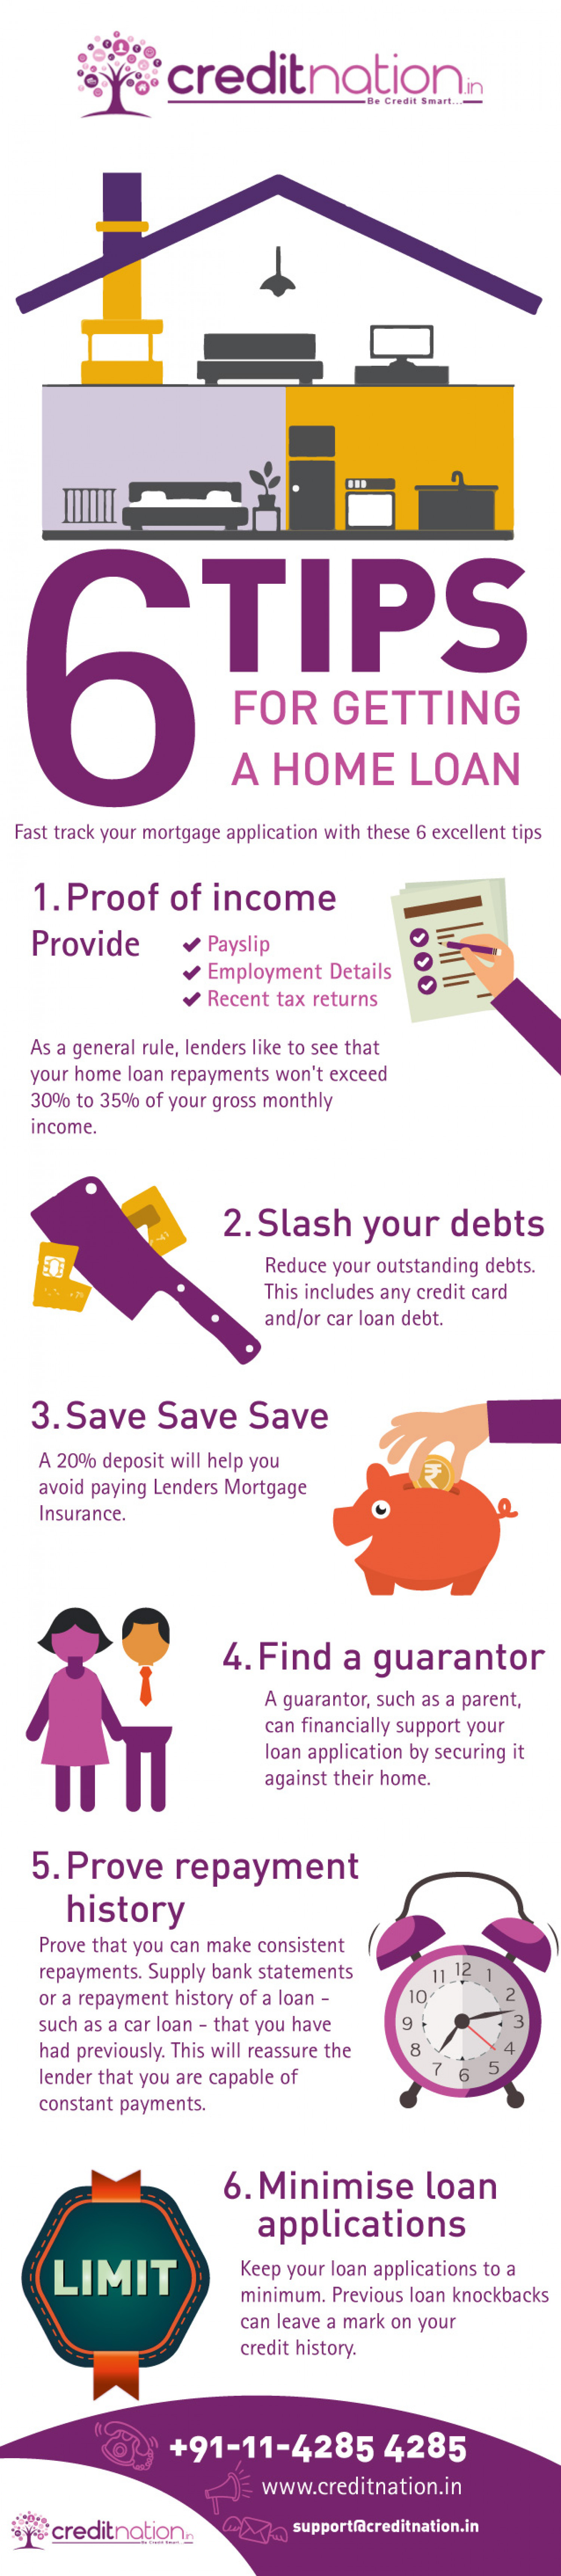 6 Tips to get a Home Loan in India Infographic